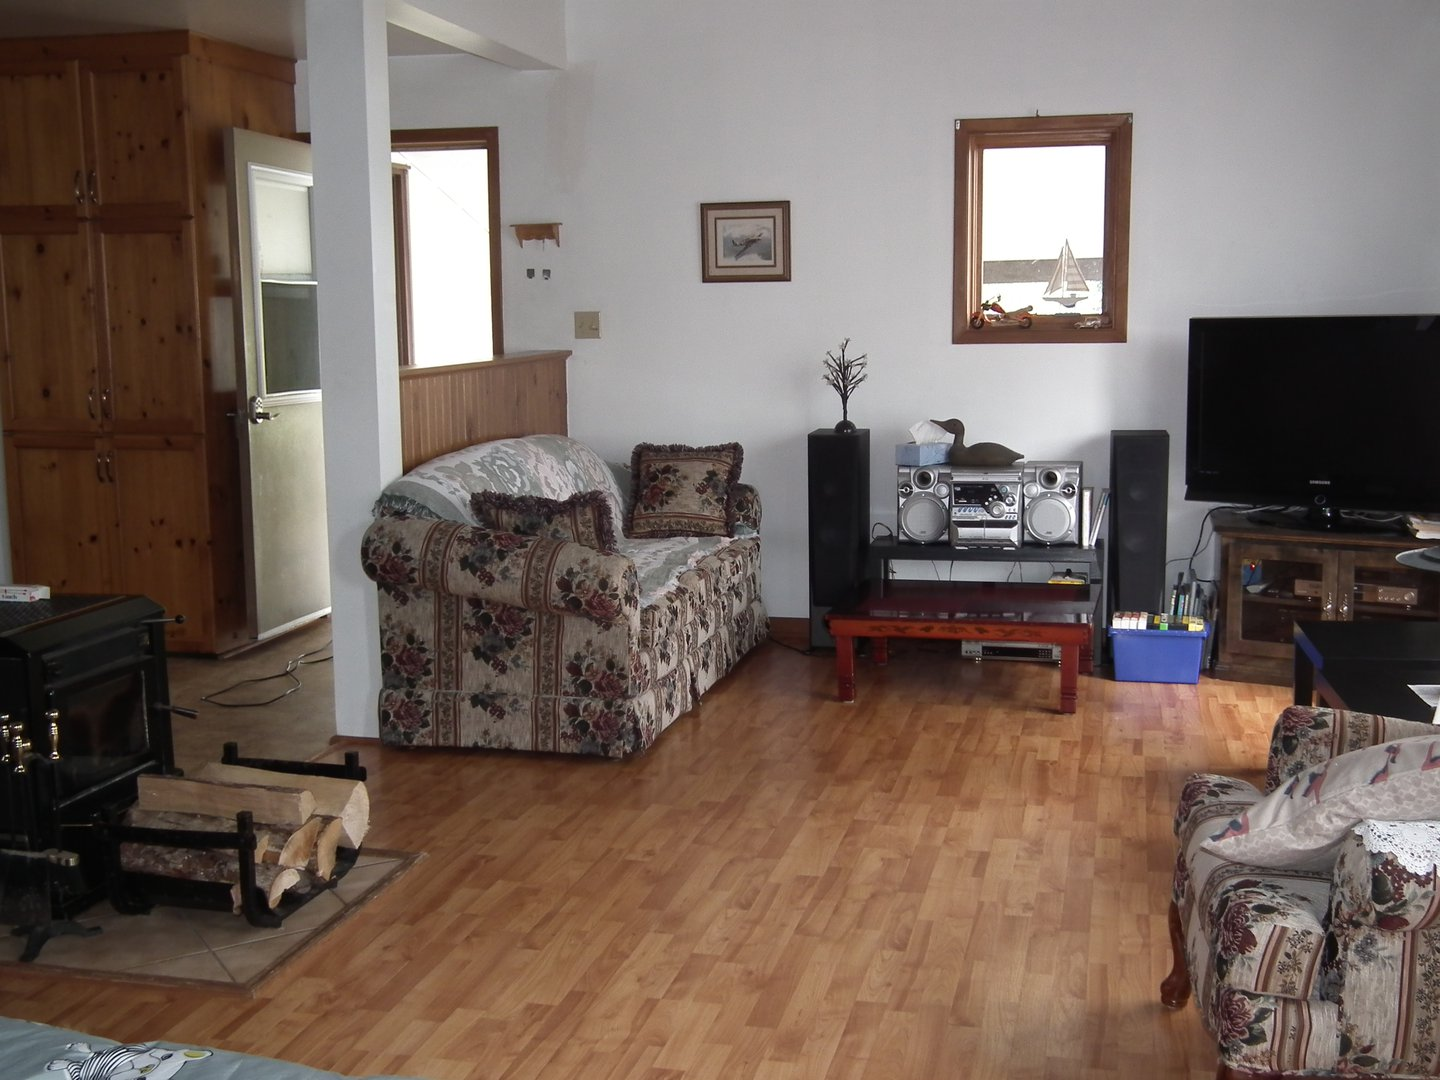 House for rent at 1751 NS-331, Pleasantville, NS. This is the living room with hardwood floor and natural light.